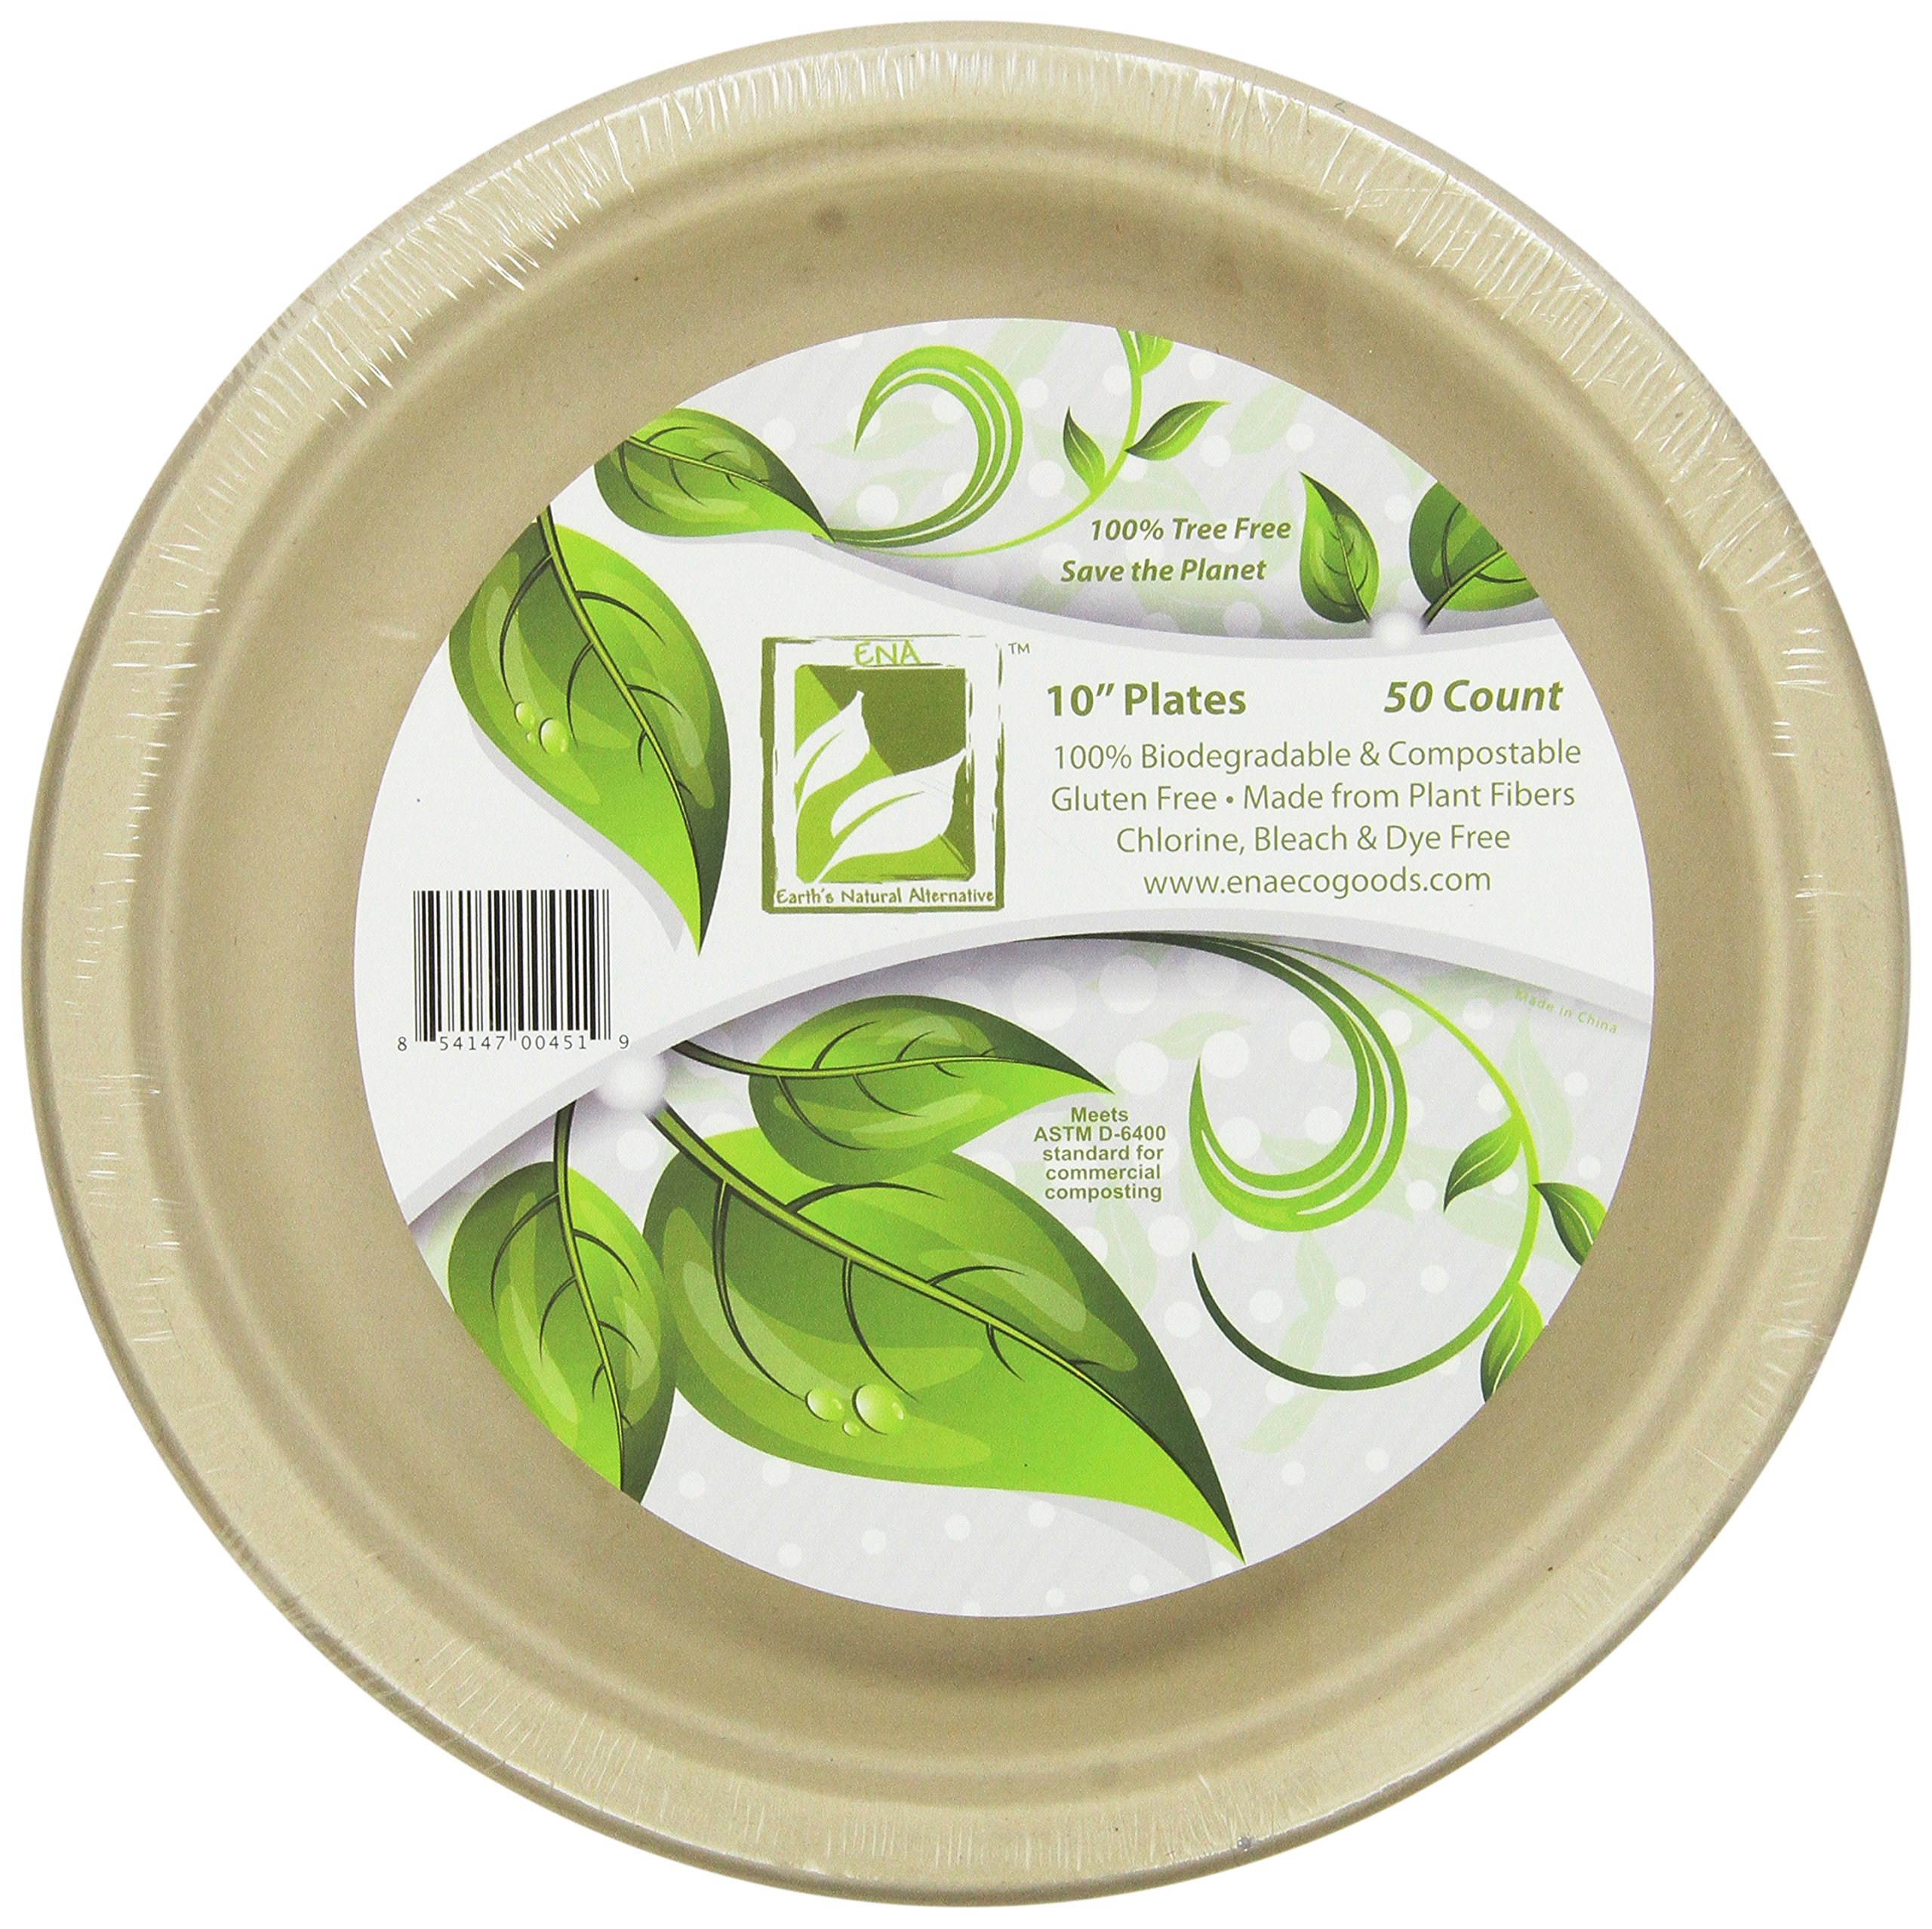 Earth's Natural Alternative Eco-Friendly, Natural Compostable Plant Fiber 10'' Plate, Natural, 50 Count by Earth's Natural Alternative